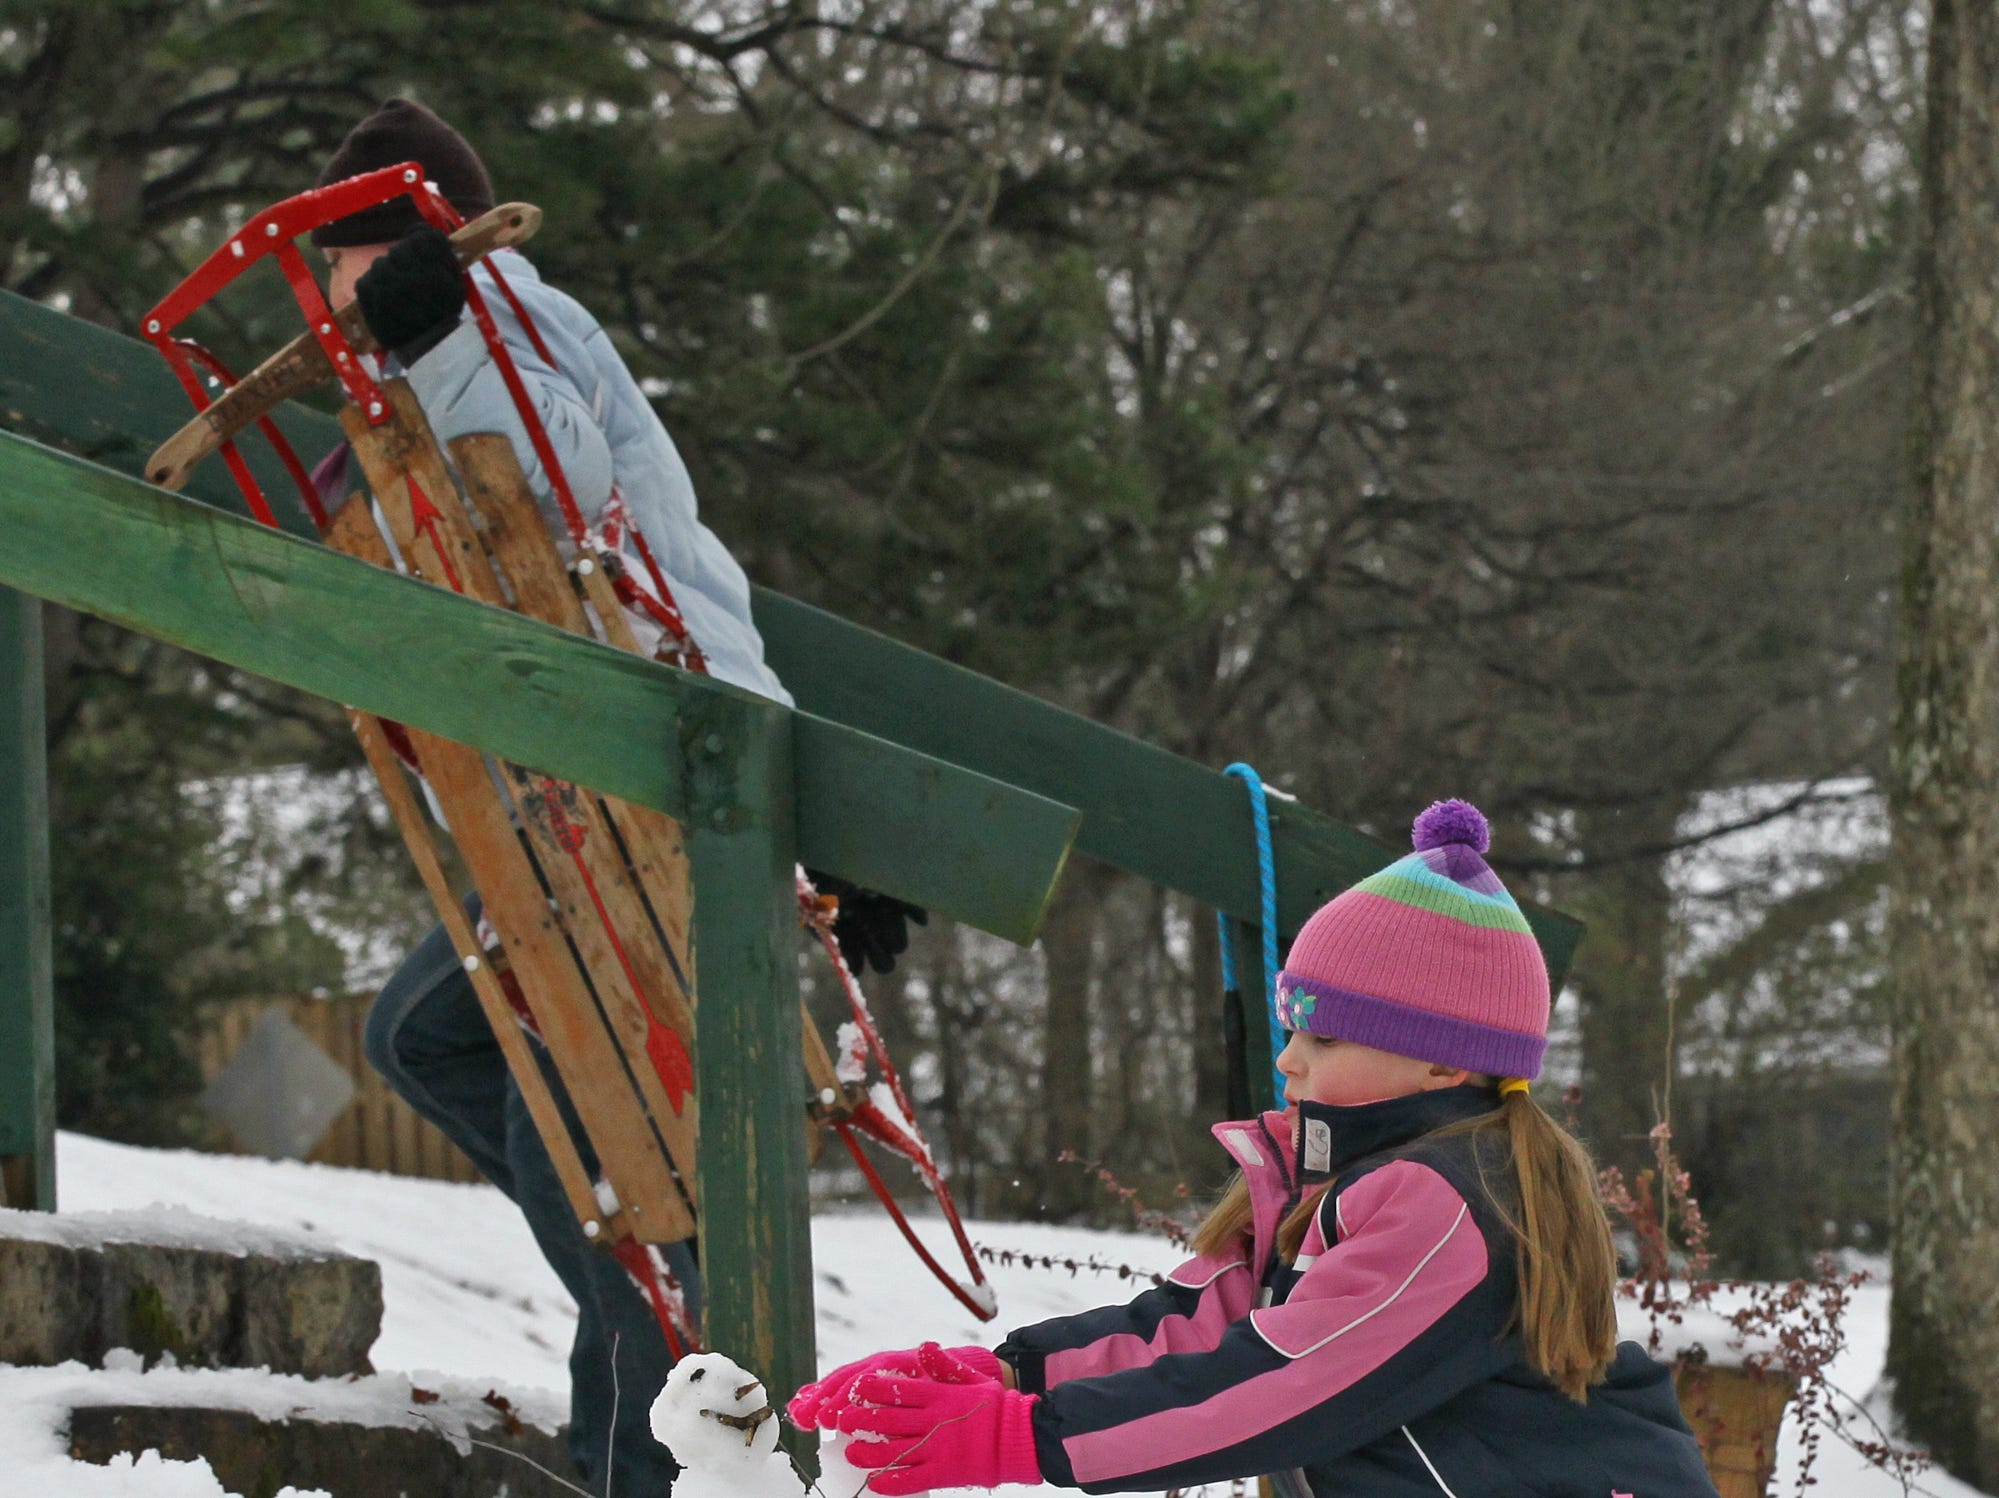 Faith Stansell of Anderson builds a snowman while other sled down hills at Linley Park in Andersonduring the first snow of 2014.